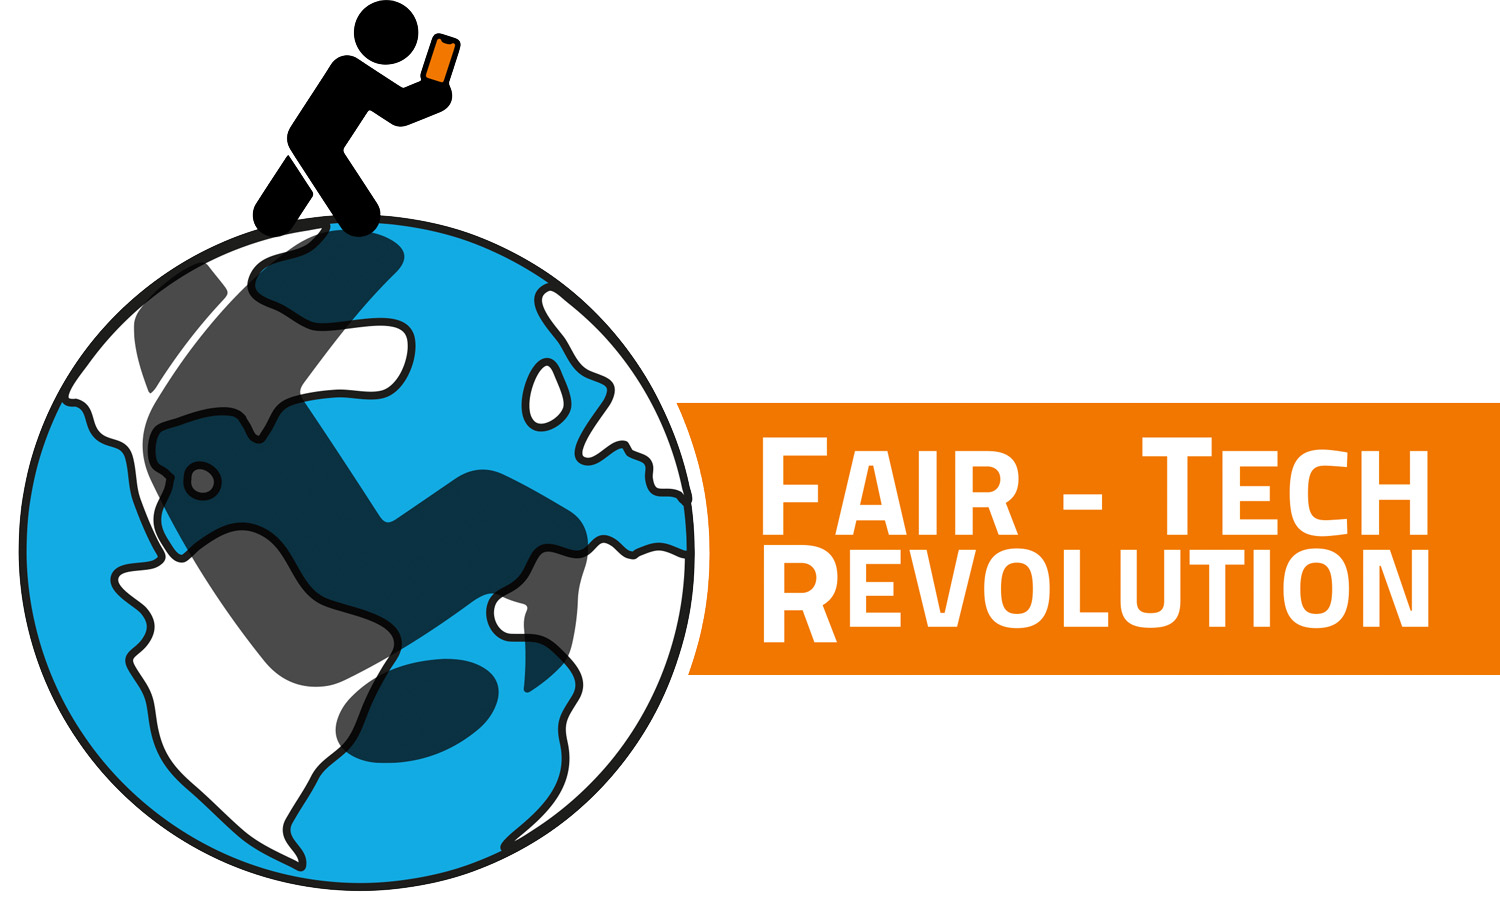 Fair Tech Revolution